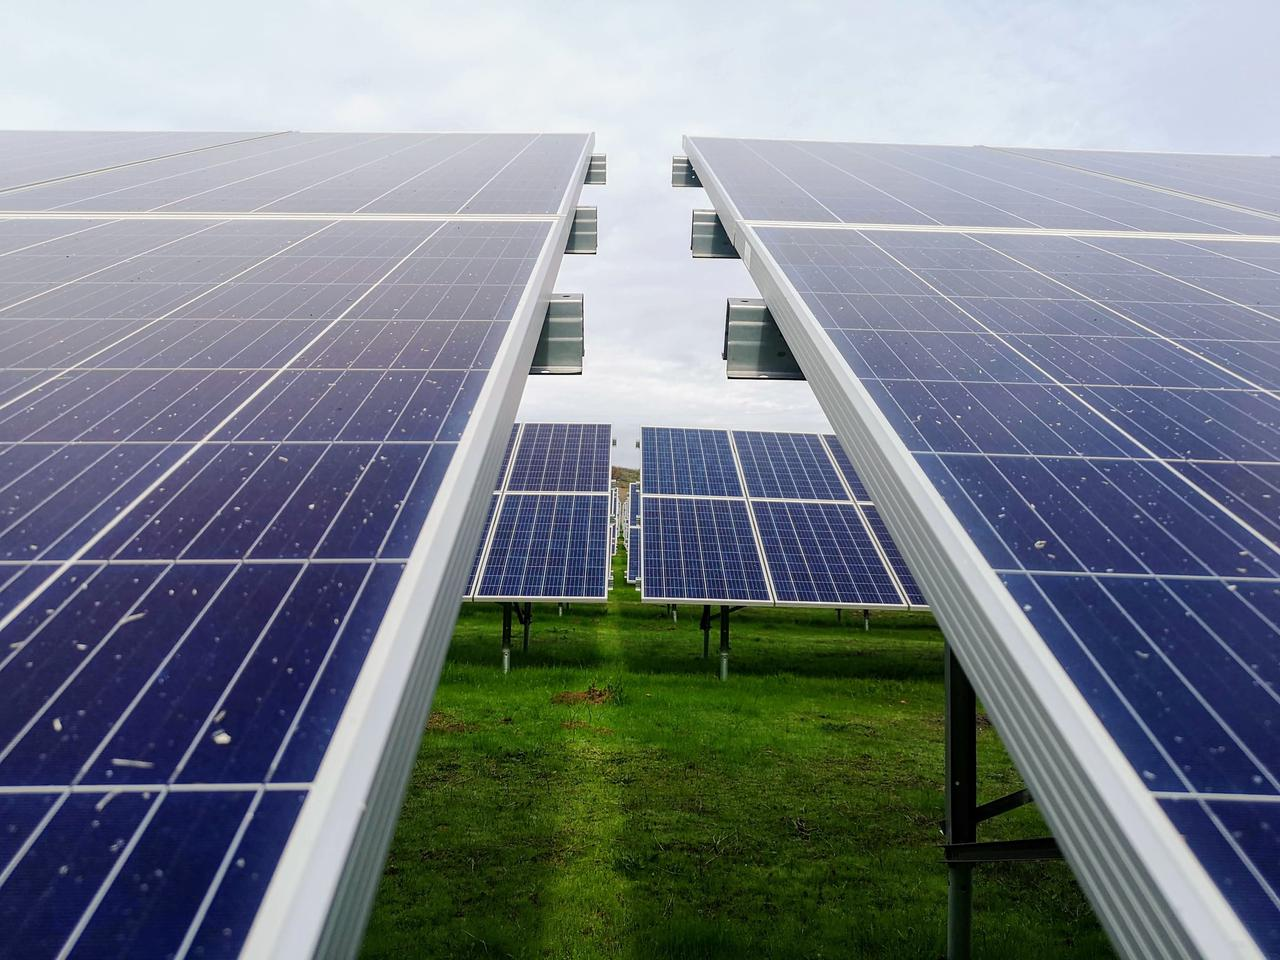 Star Enrg's solar solutions are the only way to rejuvinate our planet.